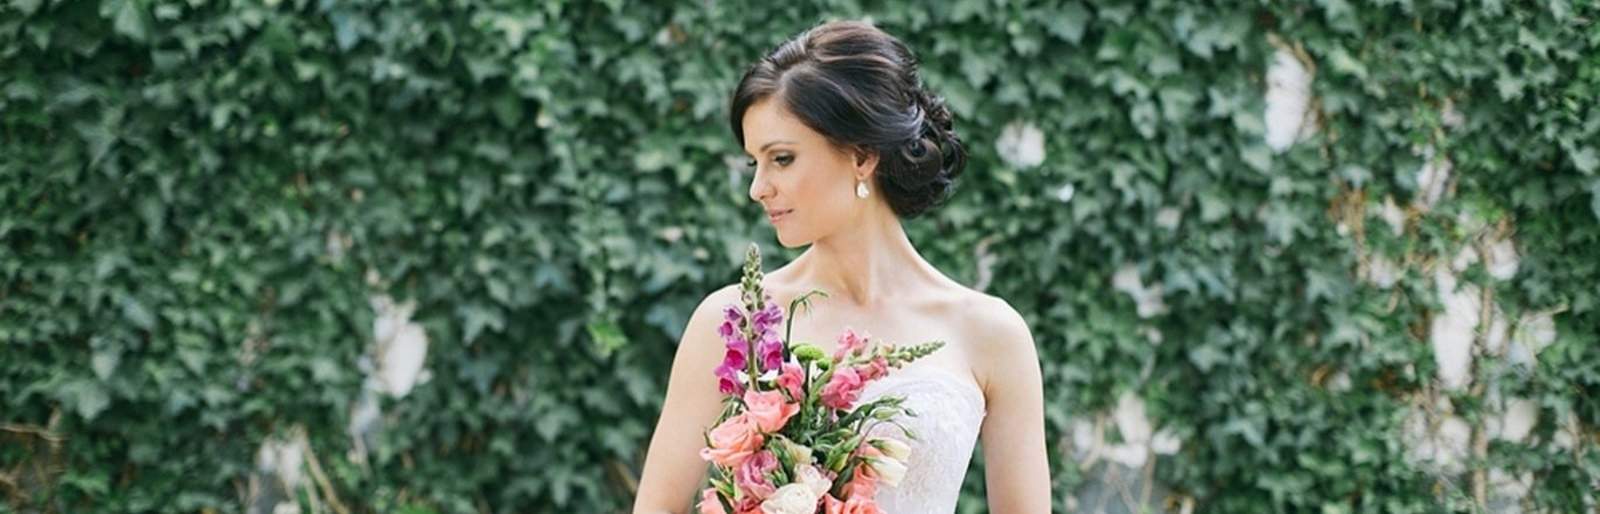 Looks We Love - Bridal Bouquets